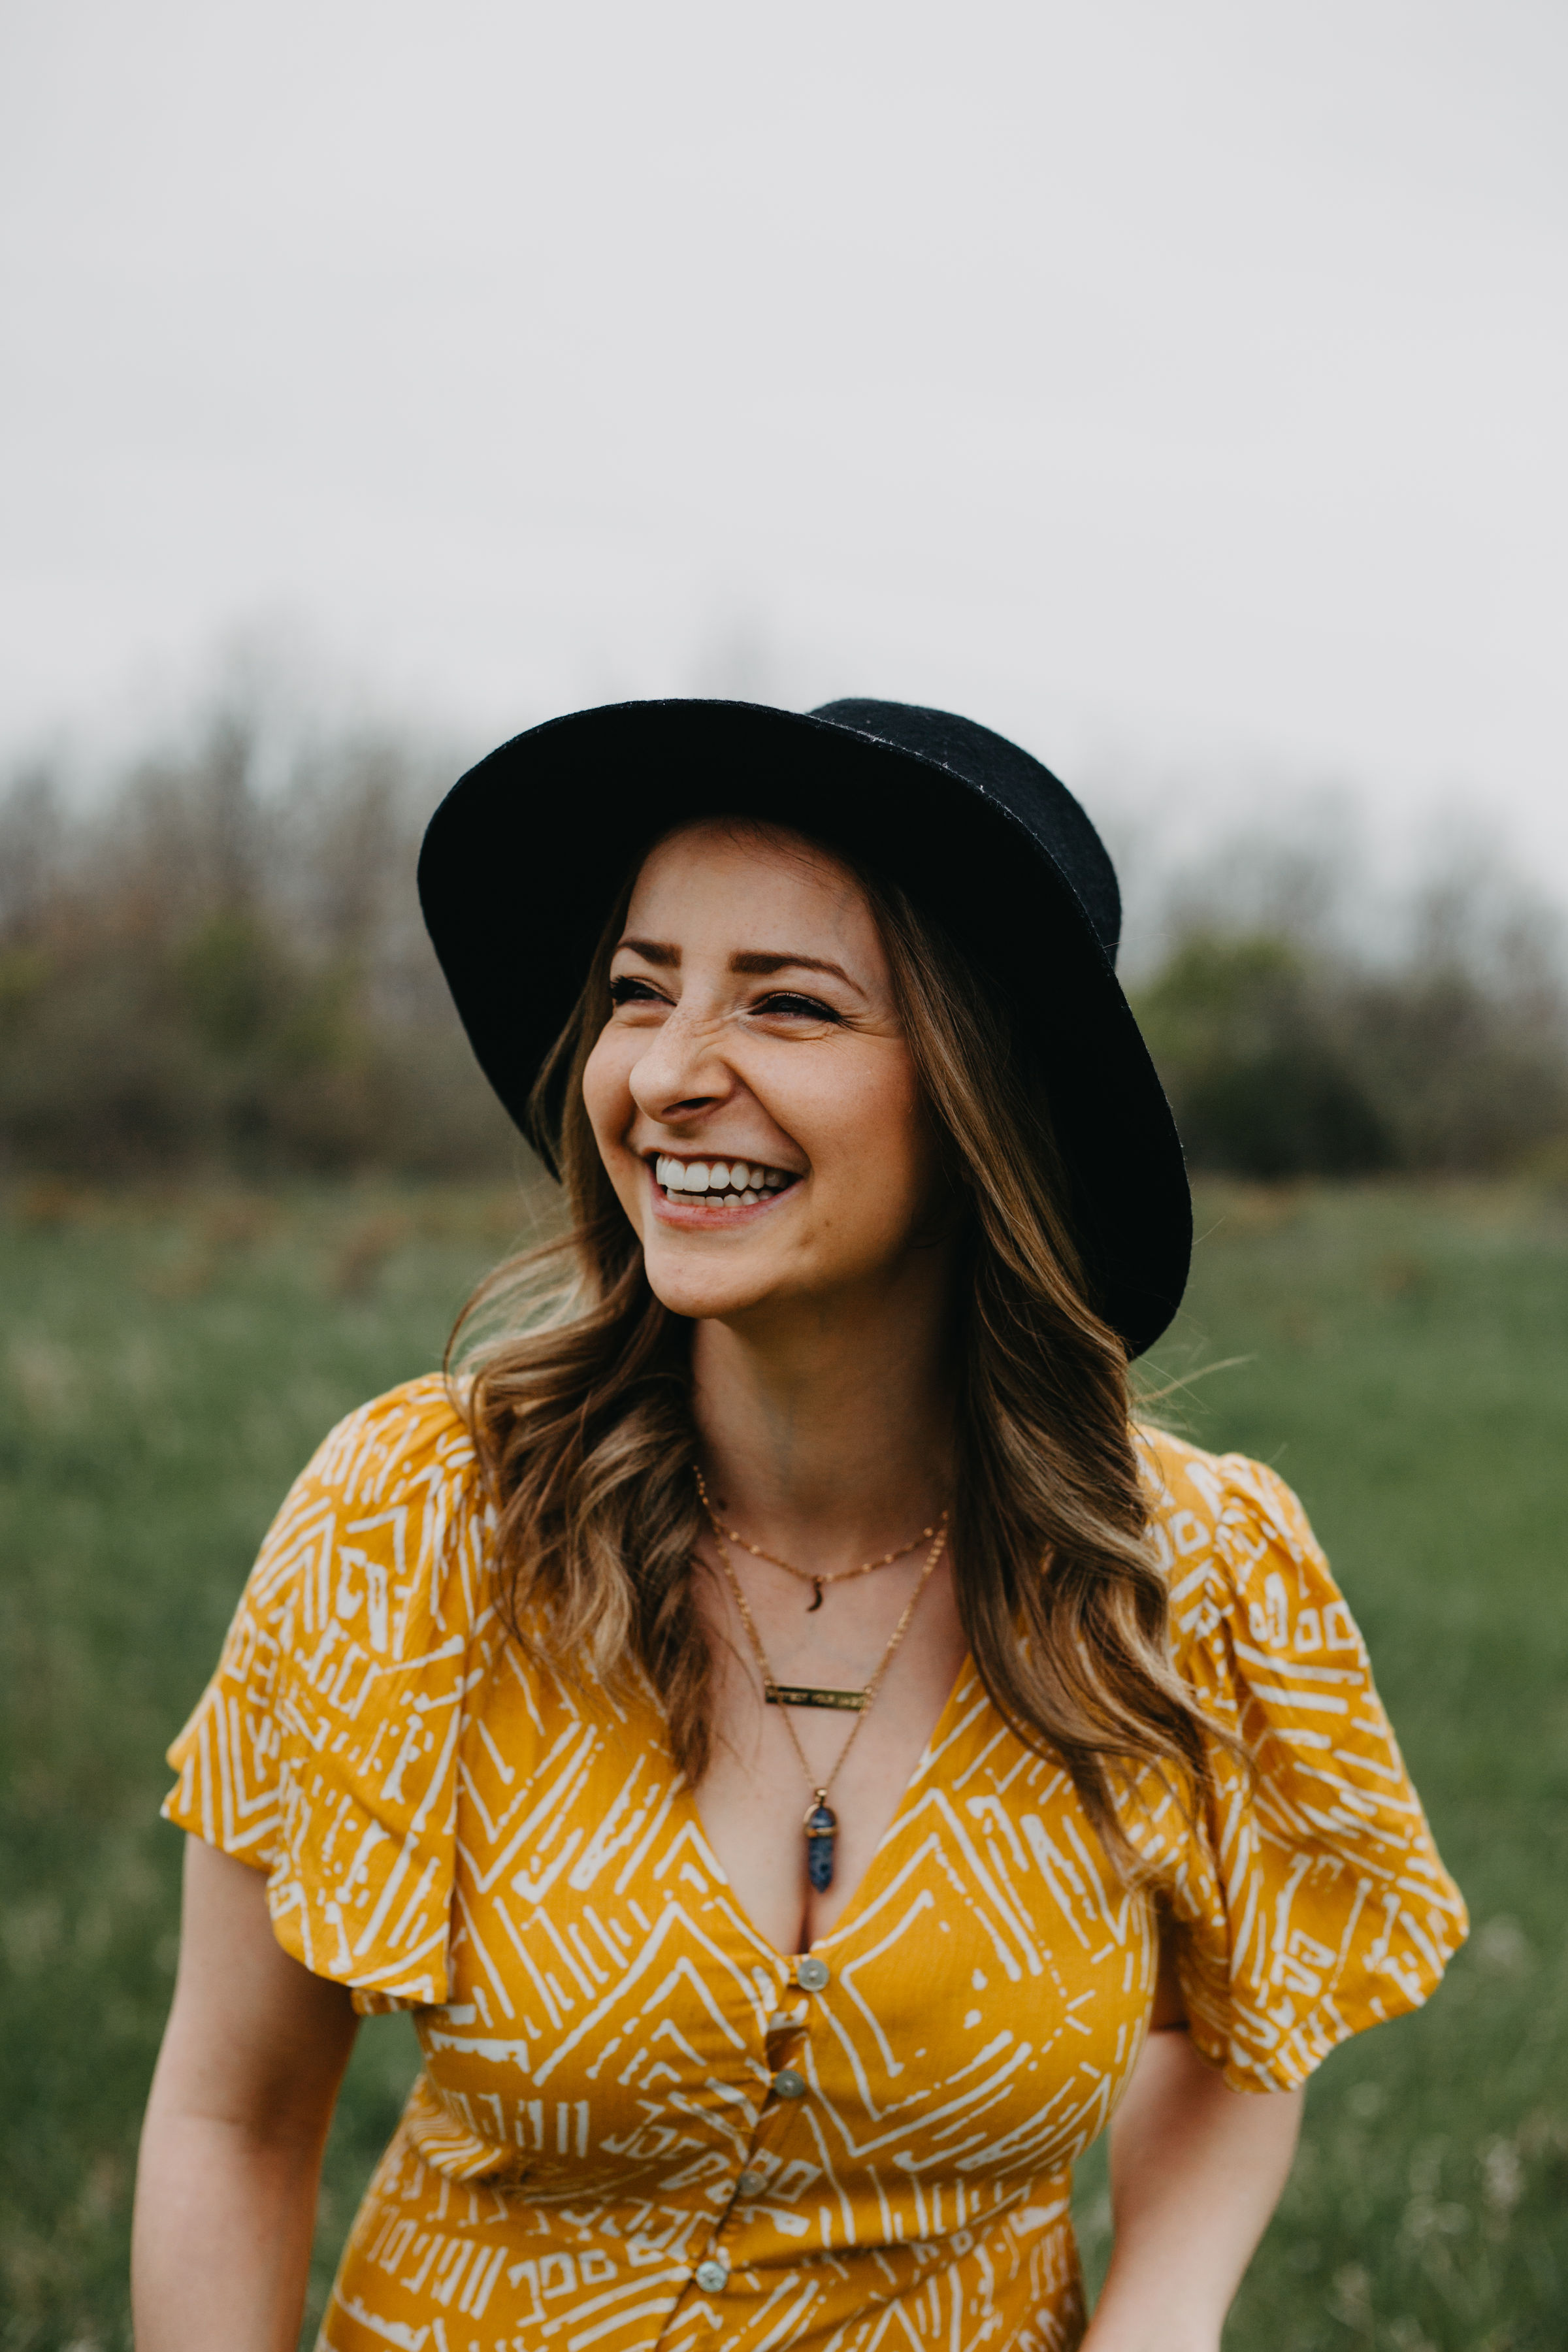 I'm Allie. - I'm a certified life coach who specializes in guiding women to shift their mindset and practice radical self-acceptance so they can access the clarity and confidence they need to live life on their terms.My intention is to be generous, kind, and straight up while allowing my heart to lead the way so that I can show up fully - for you - creating space to be wherever you are.I've worked with enough women over the past four years in my business to know that when you stop playing small and start embracing who you are, magic happens.I want to see you rise up, and take back that power you've been relinquishing lately. I'm here to be your catalyst. To guide you, challenge you, support you, cut through the bullshit, drop the limitations and remind you just how powerful you really are. The thing is, I won't settle for you playing small.Are you ready to take the leap?